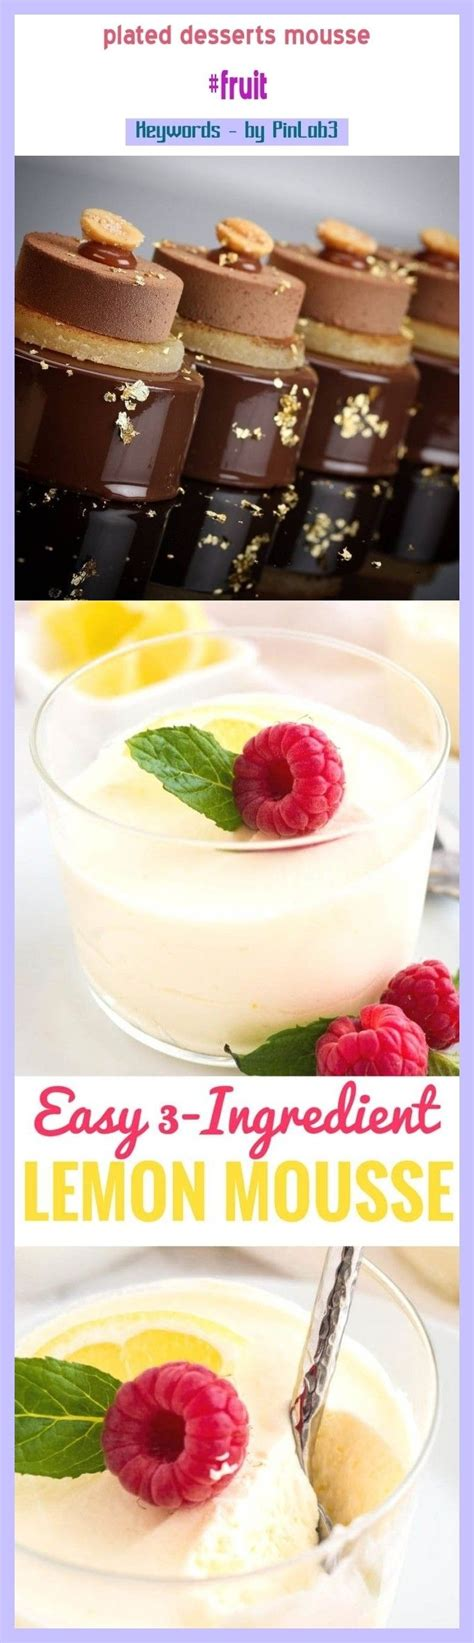 Whether it's brownies, pie, or cake that strikes your fancy, our delicious dessert recipes are sure to please. Plated desserts mousse #fruit #gardens. plated desserts fine dining, plated desserts simple ...